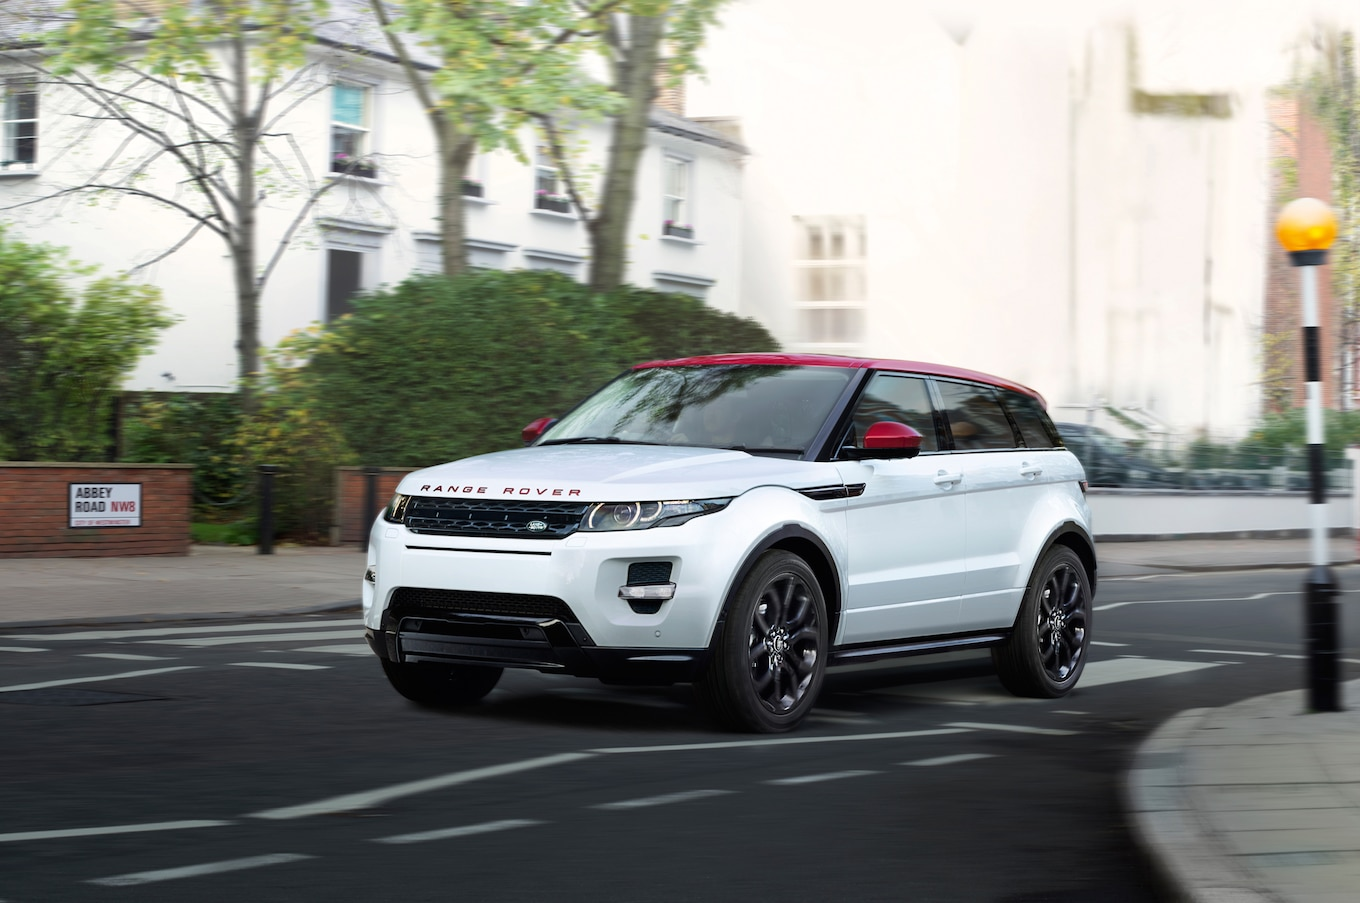 Range Rover Evoque NW8 Special Edition Announced